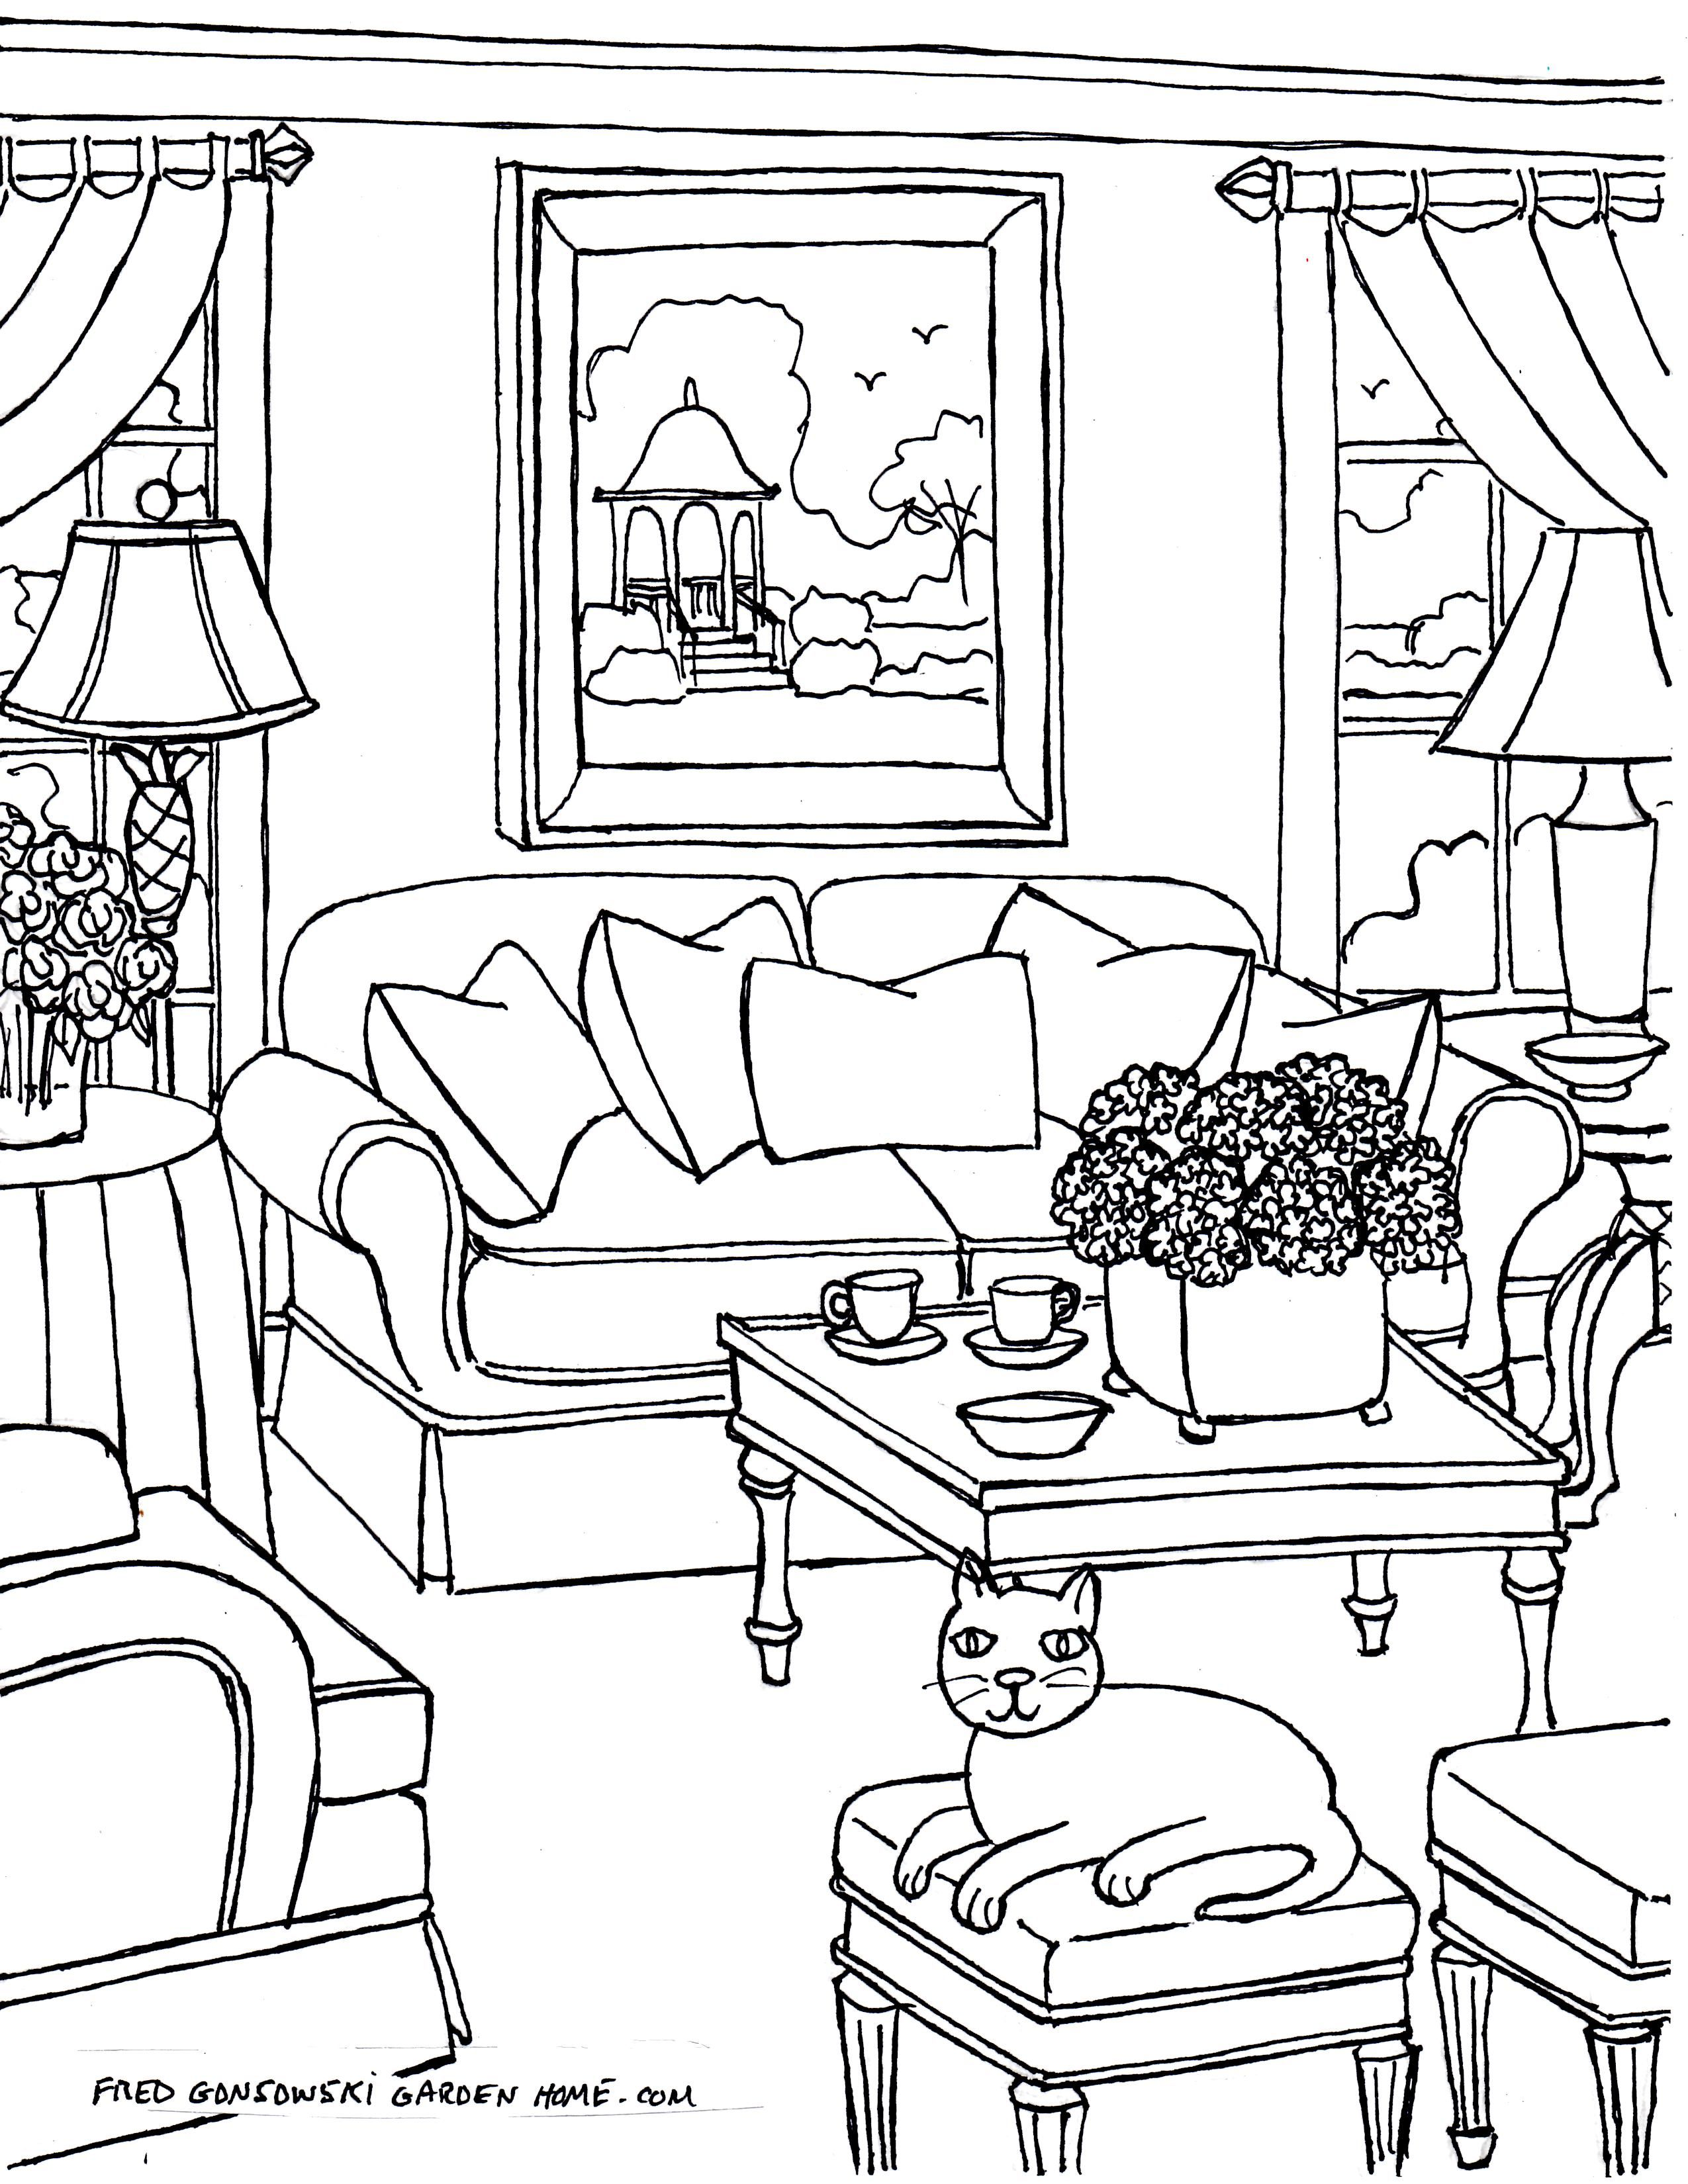 Some Fred Gonsowski drawings of Living Rooms for Adults to